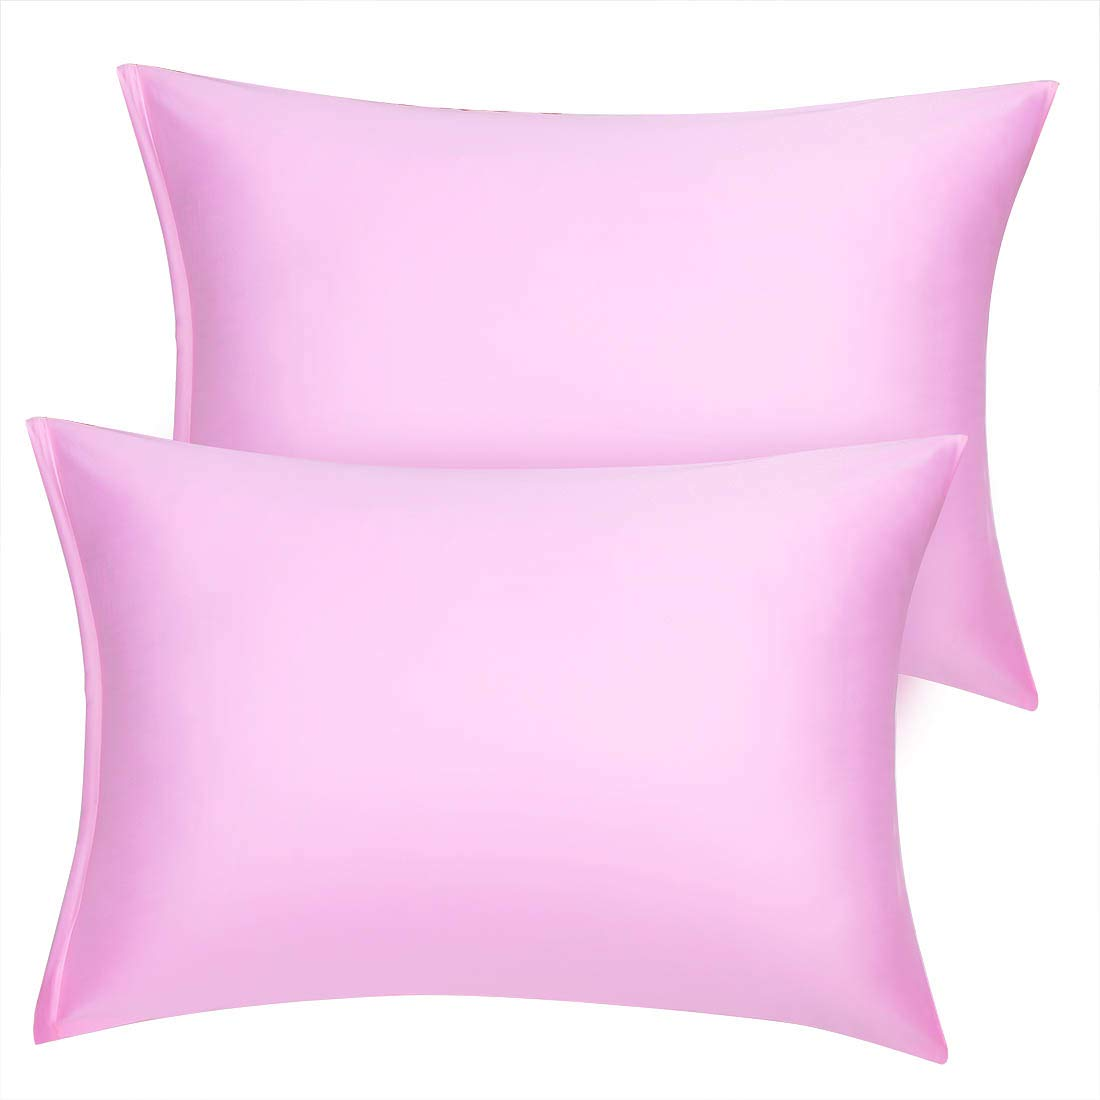 Popeven Super Soft And Luxury Silky Pillow Cases Covers